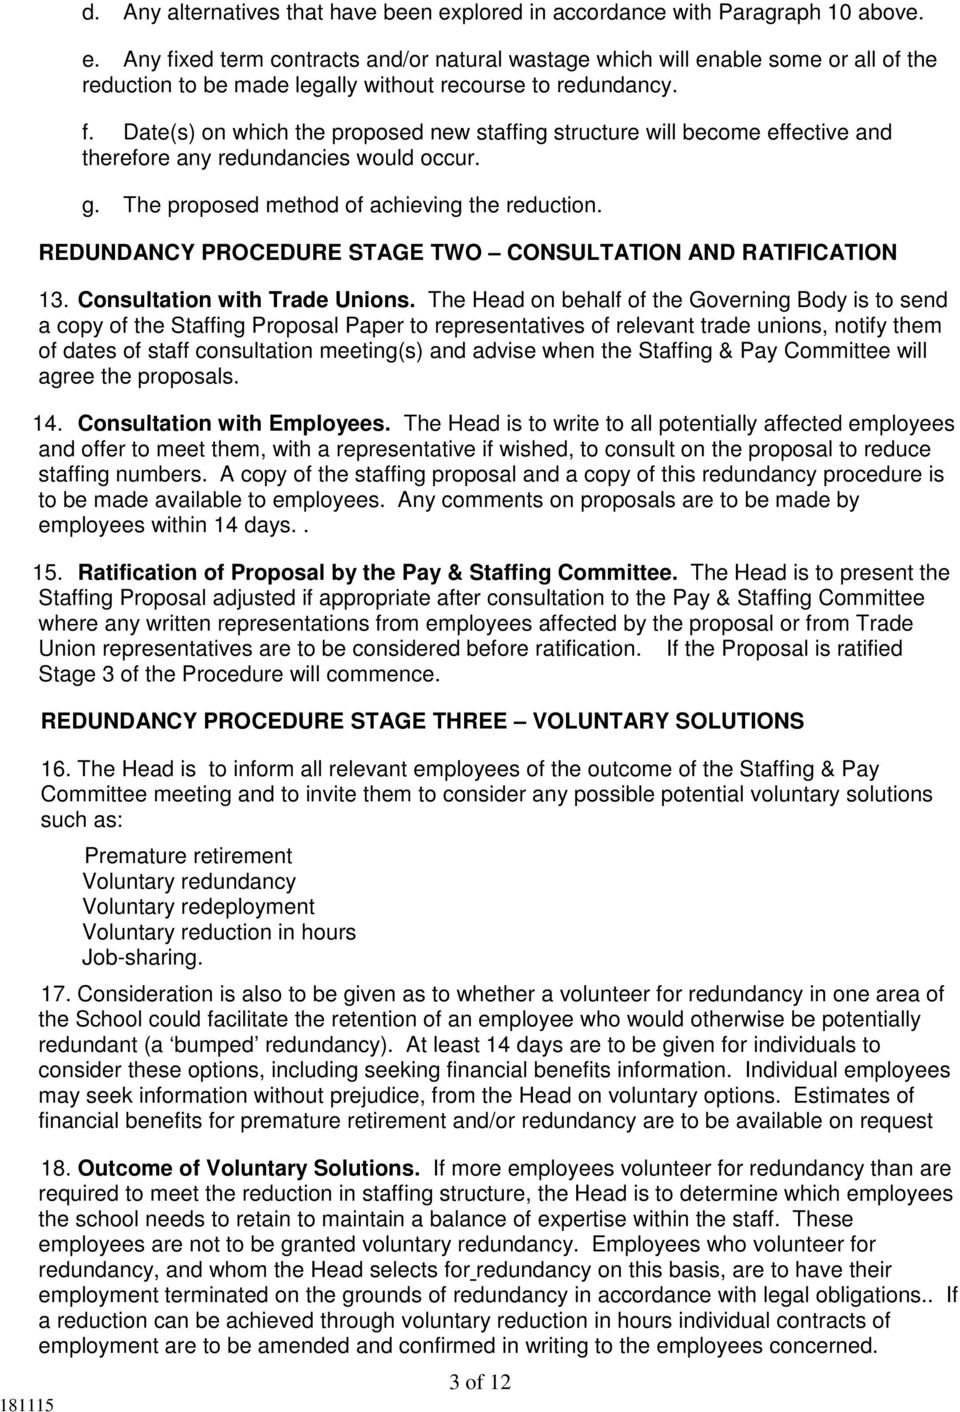 REDUNDANCY PROCEDURE STAGE TWO CONSULTATION AND RATIFICATION 13. Consultation with Trade Unions.